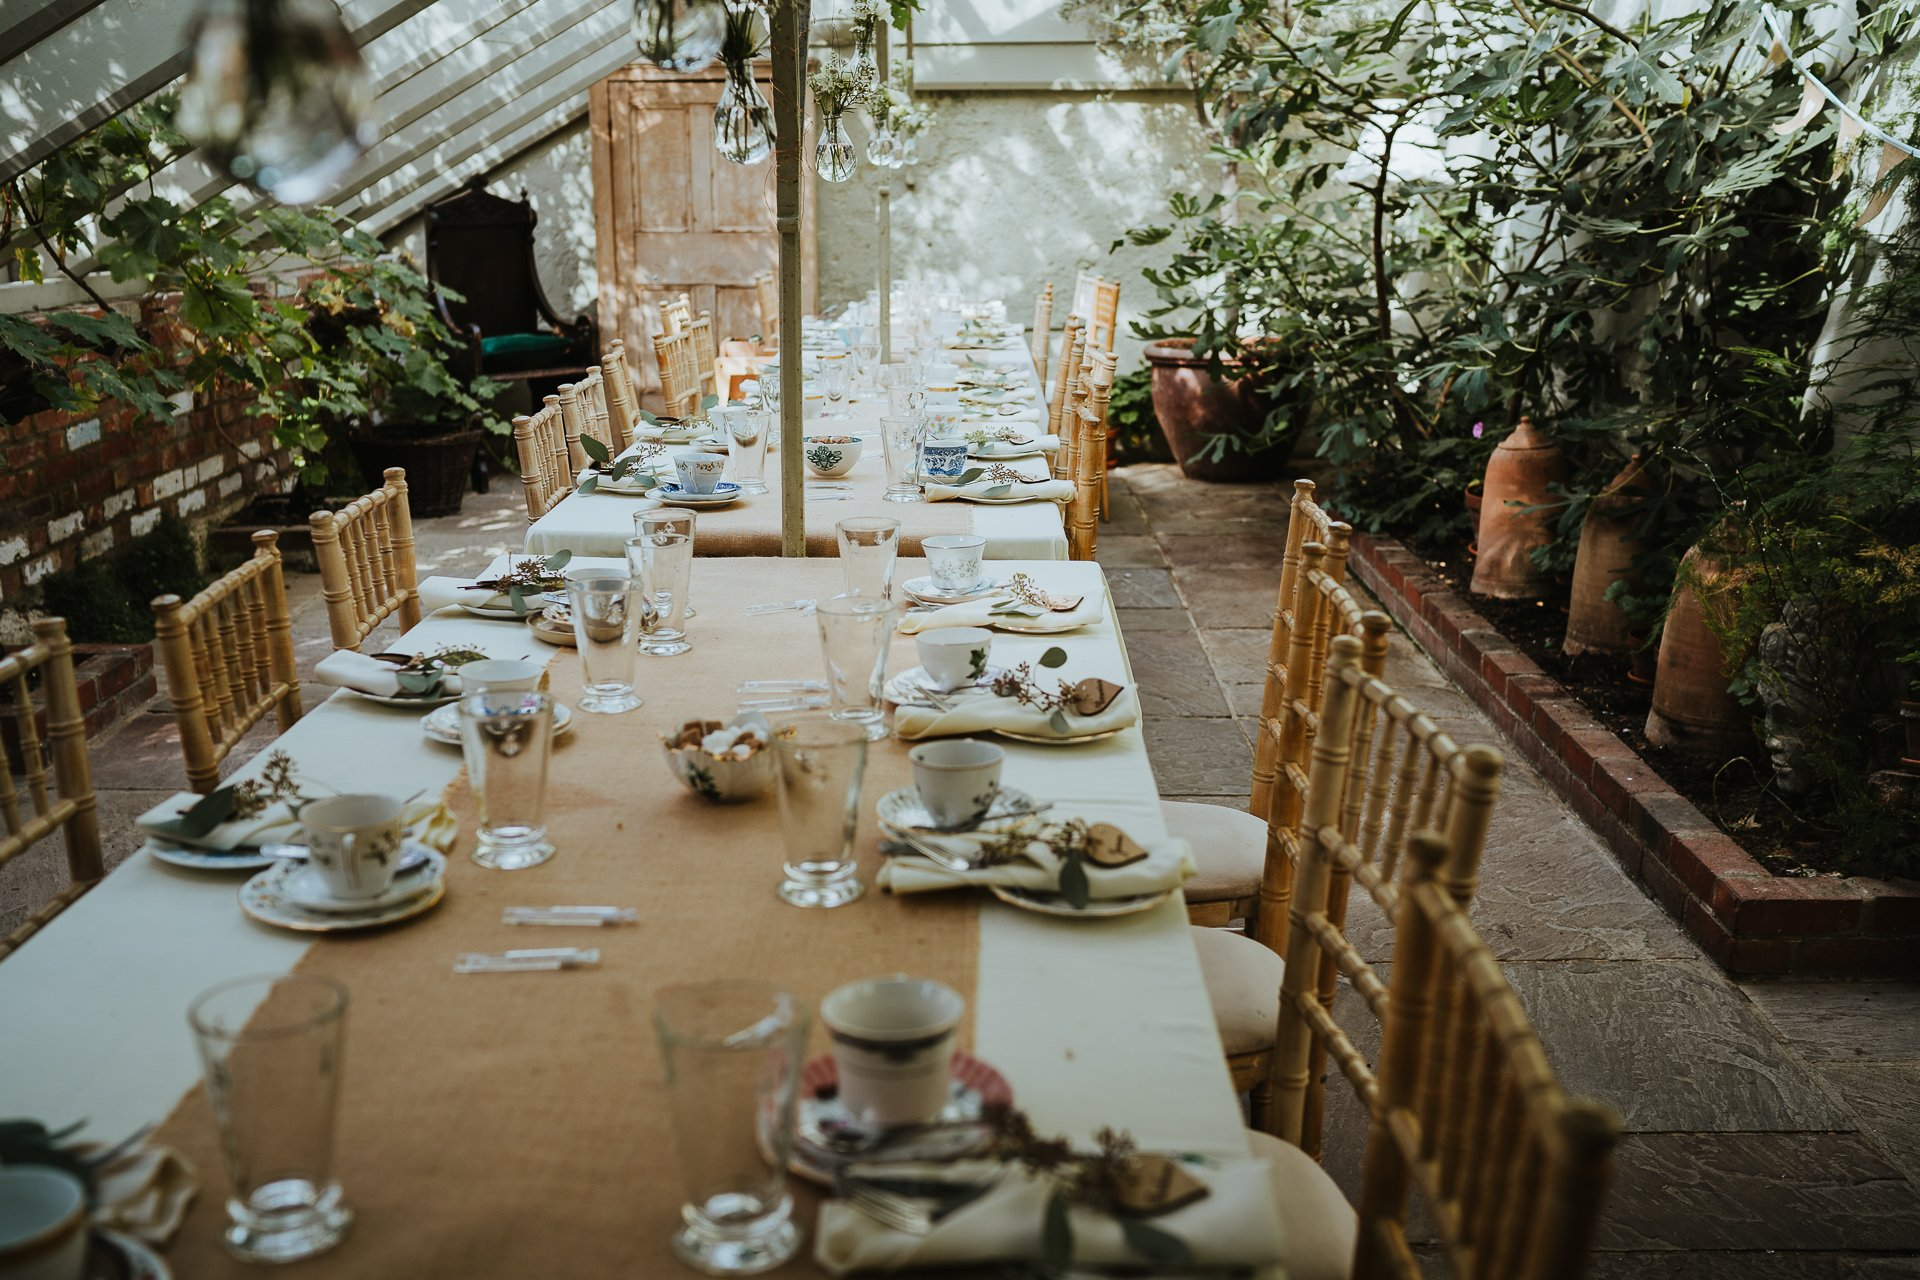 The Glasshouse at The Secret Garden decorated for a wedding breakfast